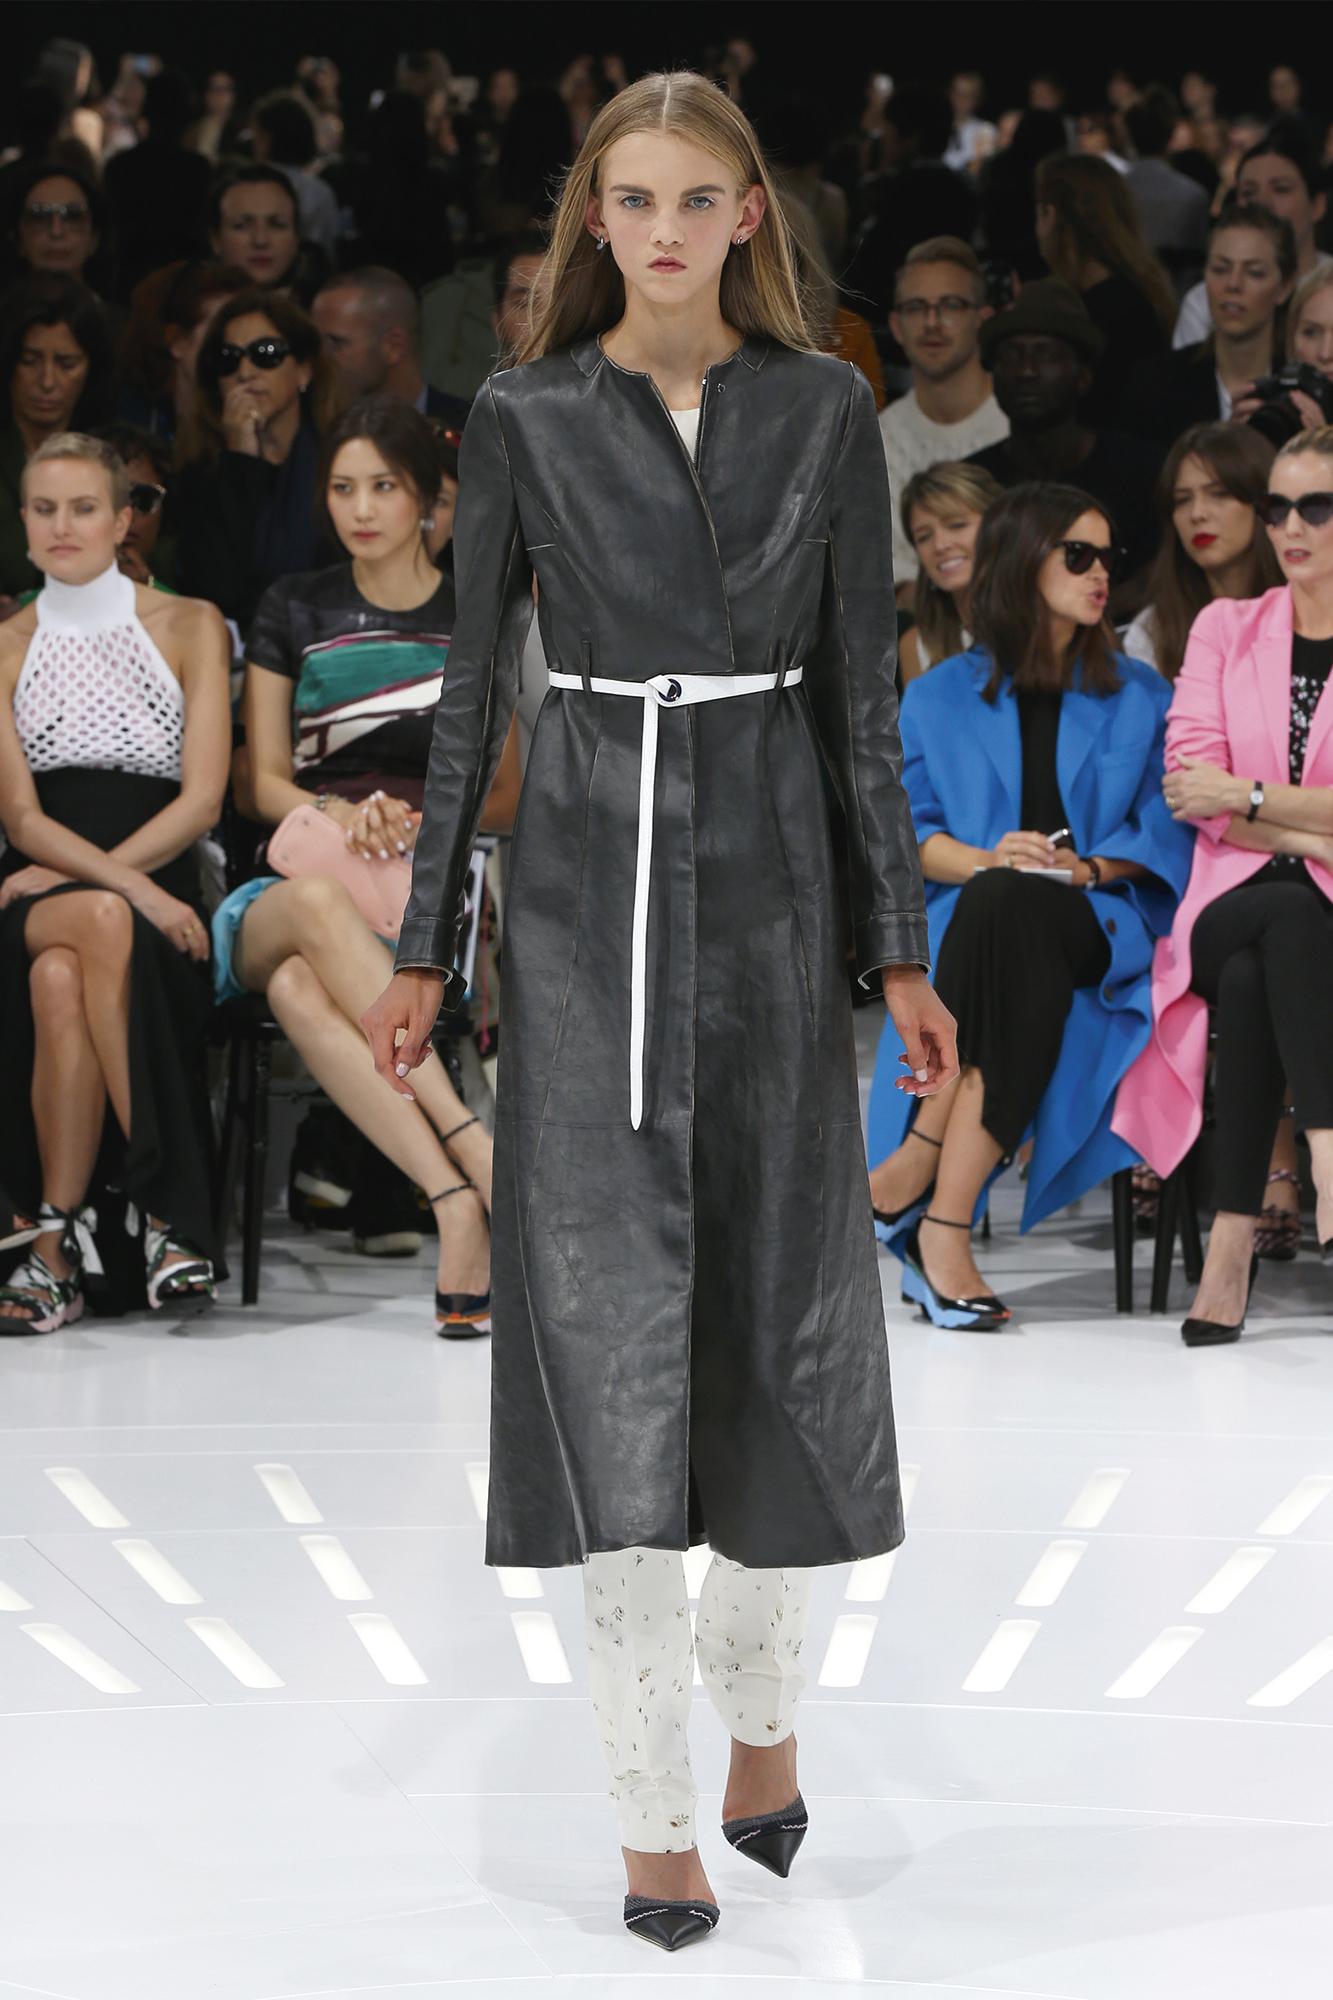 christian-dior-spring-summer-RTW-collection (3)